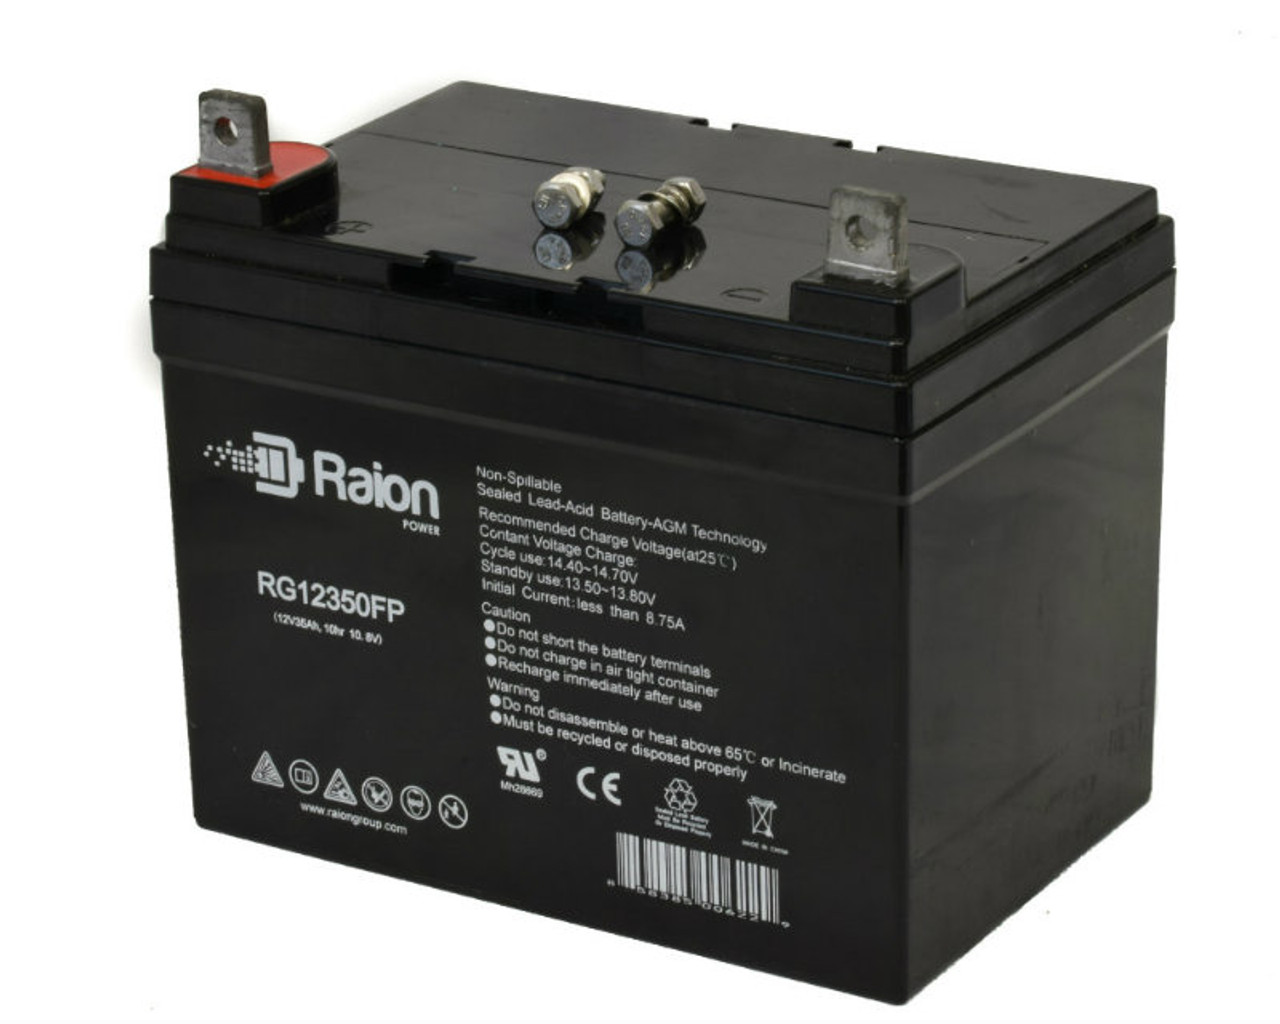 Raion Power RG12350FP Replacement Wheelchair Battery For Leisure Lift AGM1234T (1 Pack)